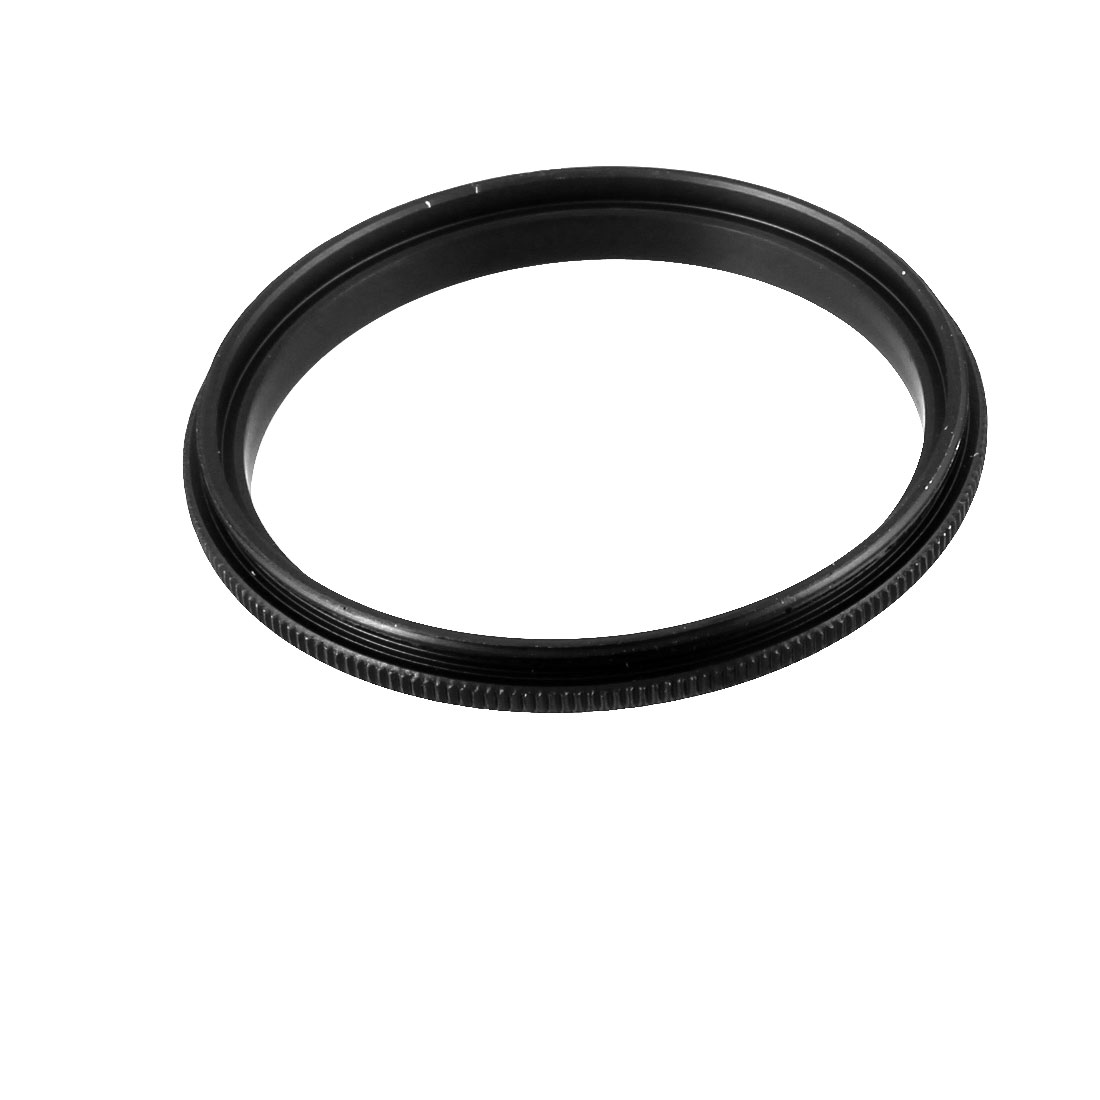 49mm-52mm 49mm to 52mm Male to Male Step up Ring Adapter Black for Camera